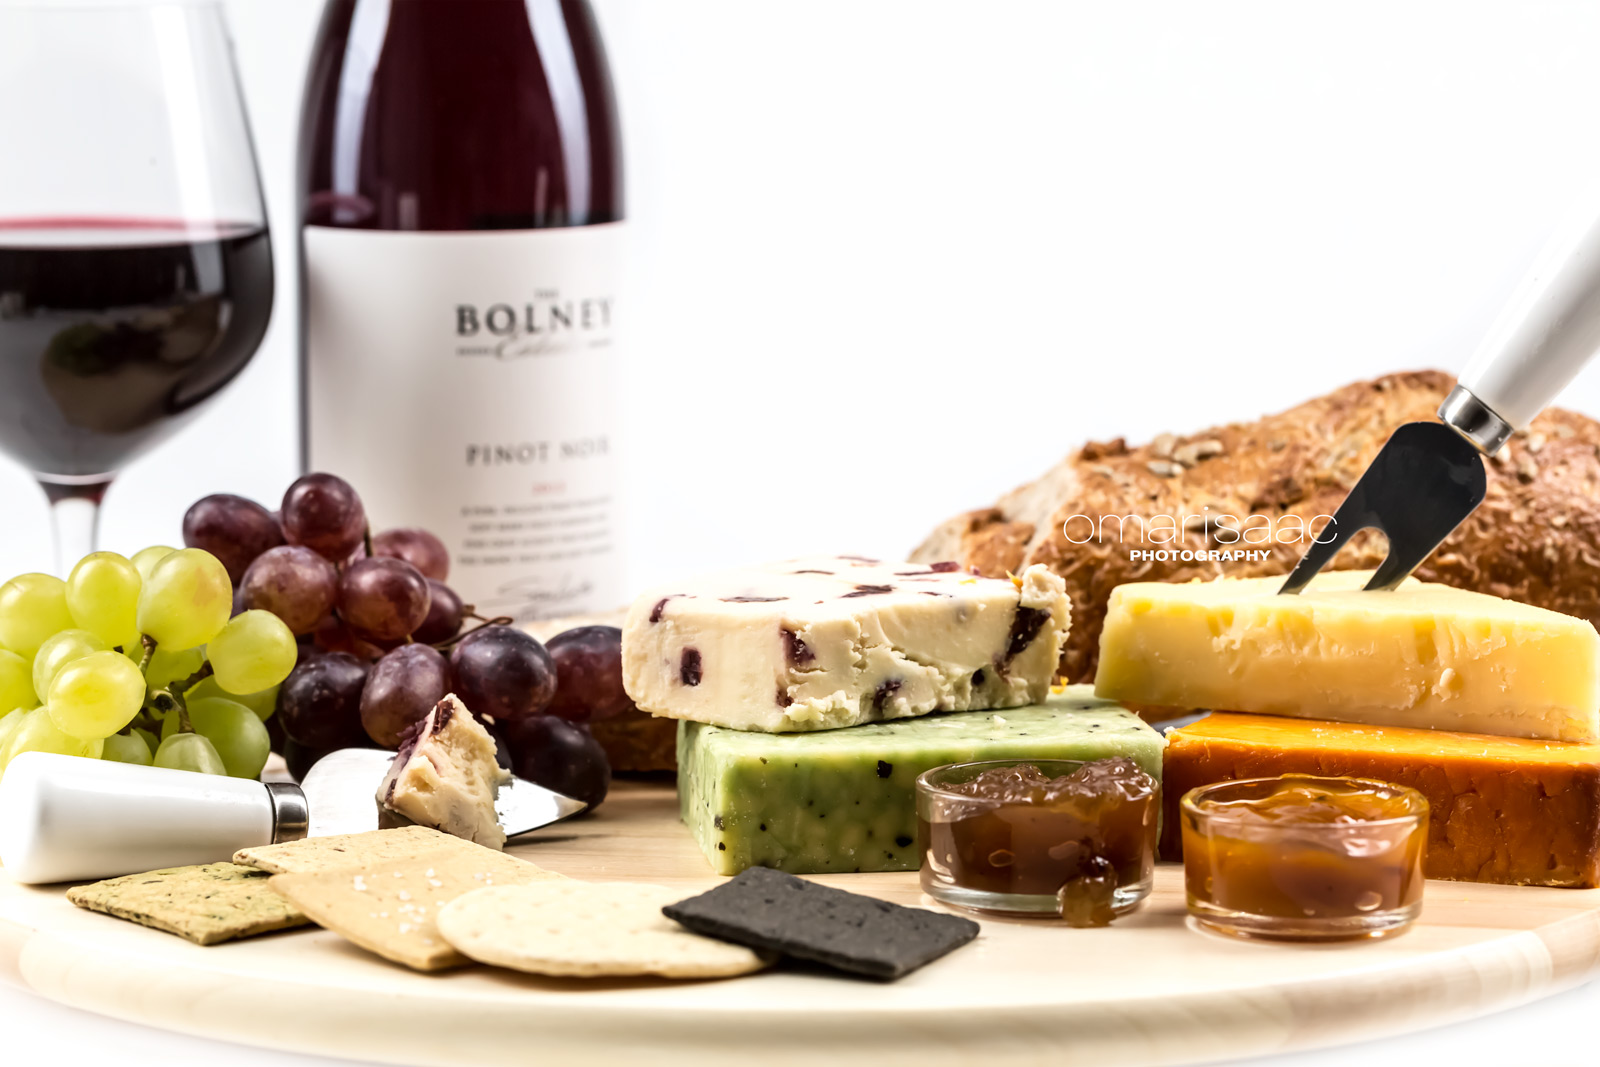 Grapes, Wine, crackers & Cheese